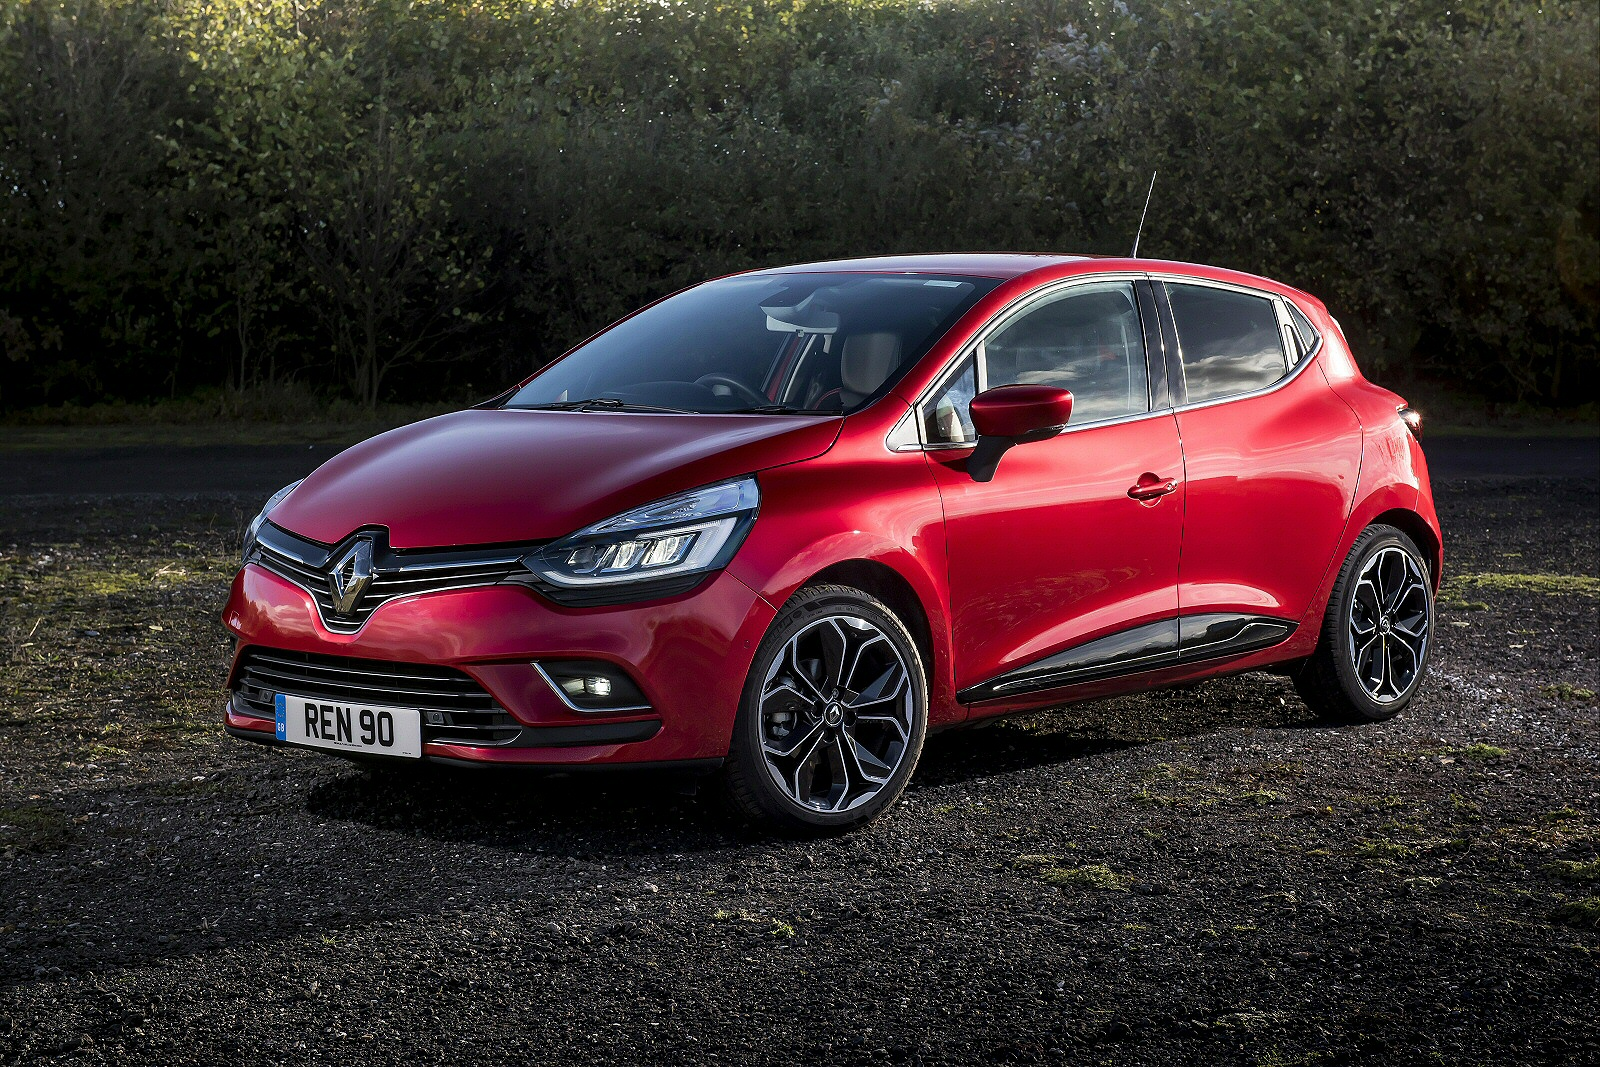 new renault clio 1 5 dci 90 gt line 5dr diesel hatchback for sale bristol street. Black Bedroom Furniture Sets. Home Design Ideas